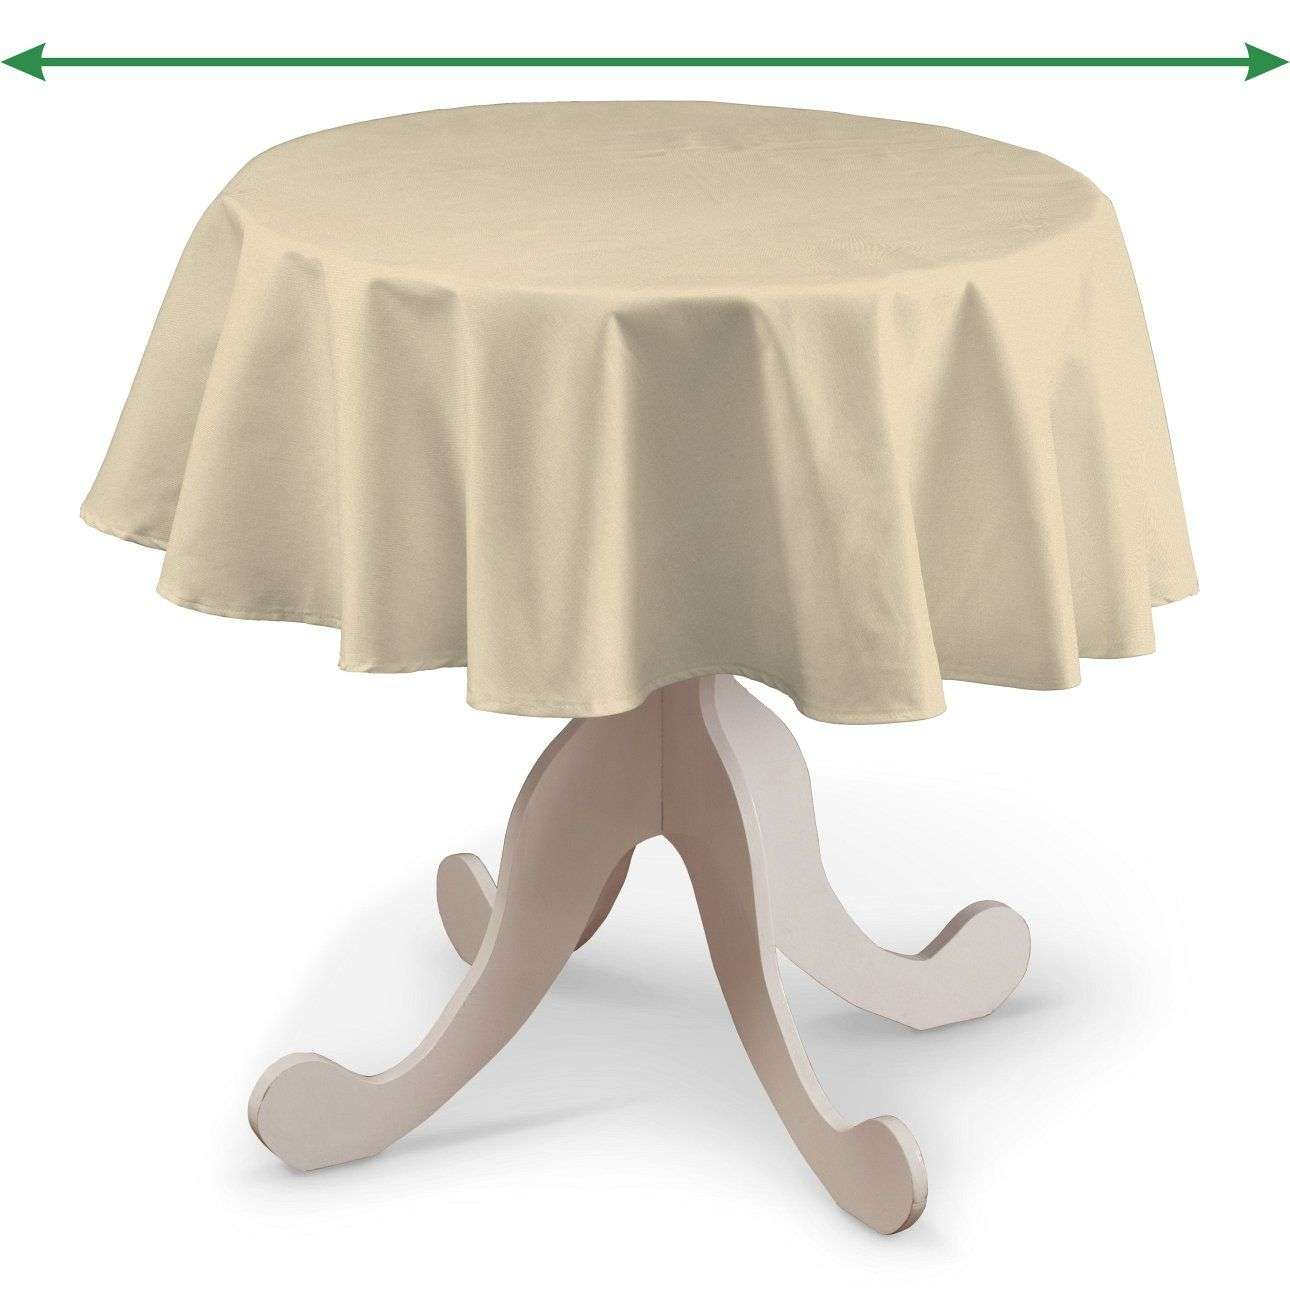 Round tablecloth in collection Damasco, fabric: 141-73